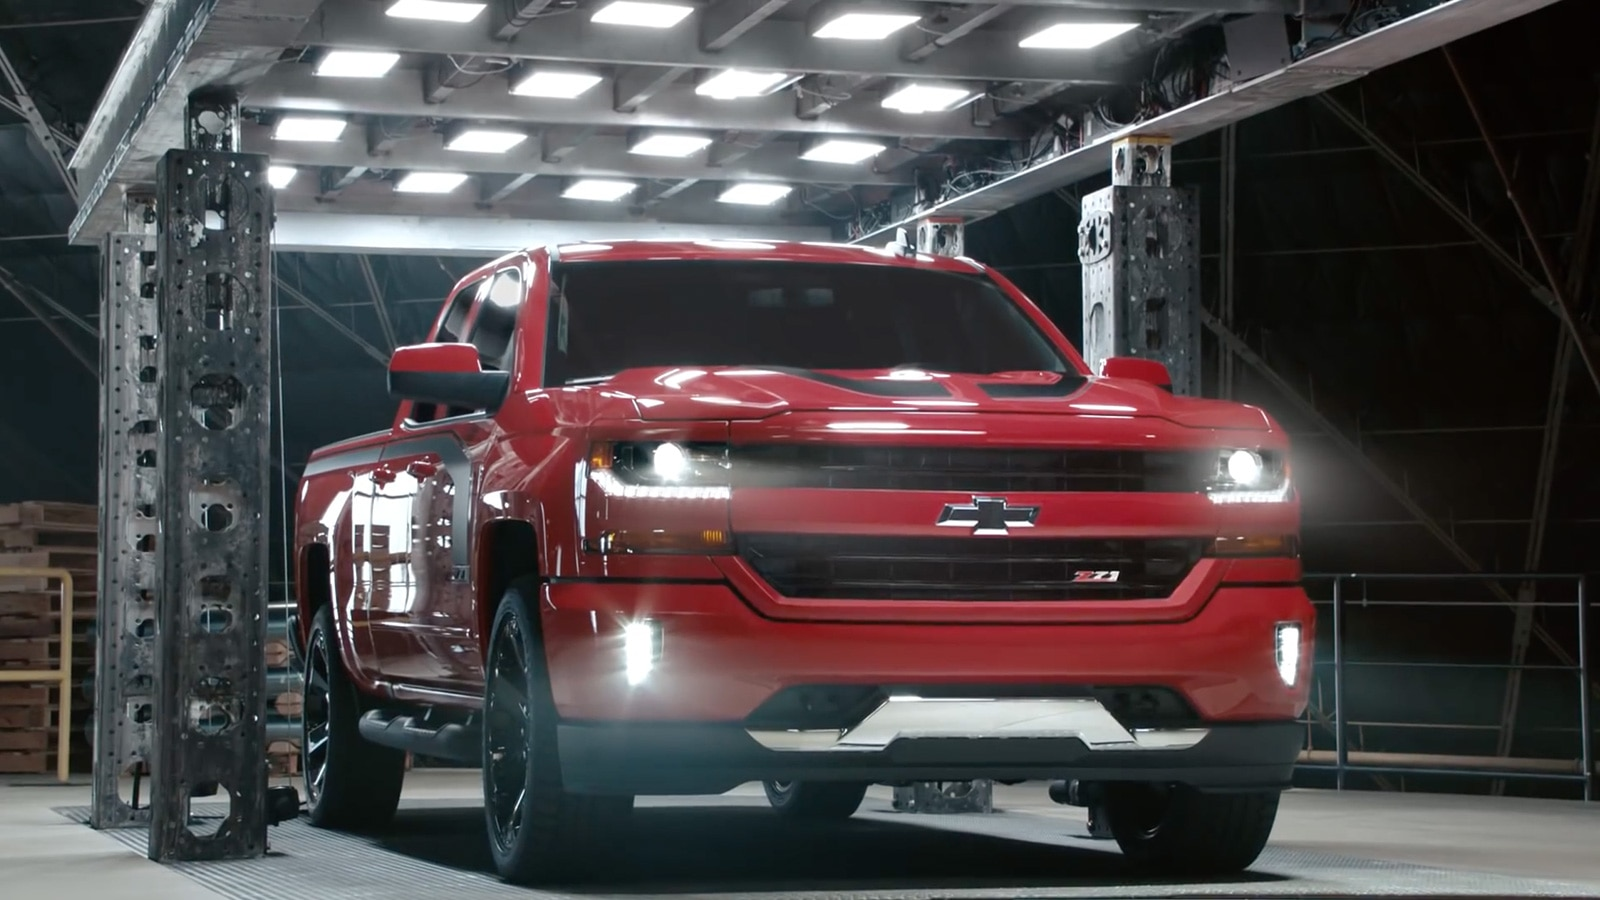 Ediciones especiales de Chevy Silverado: Rally